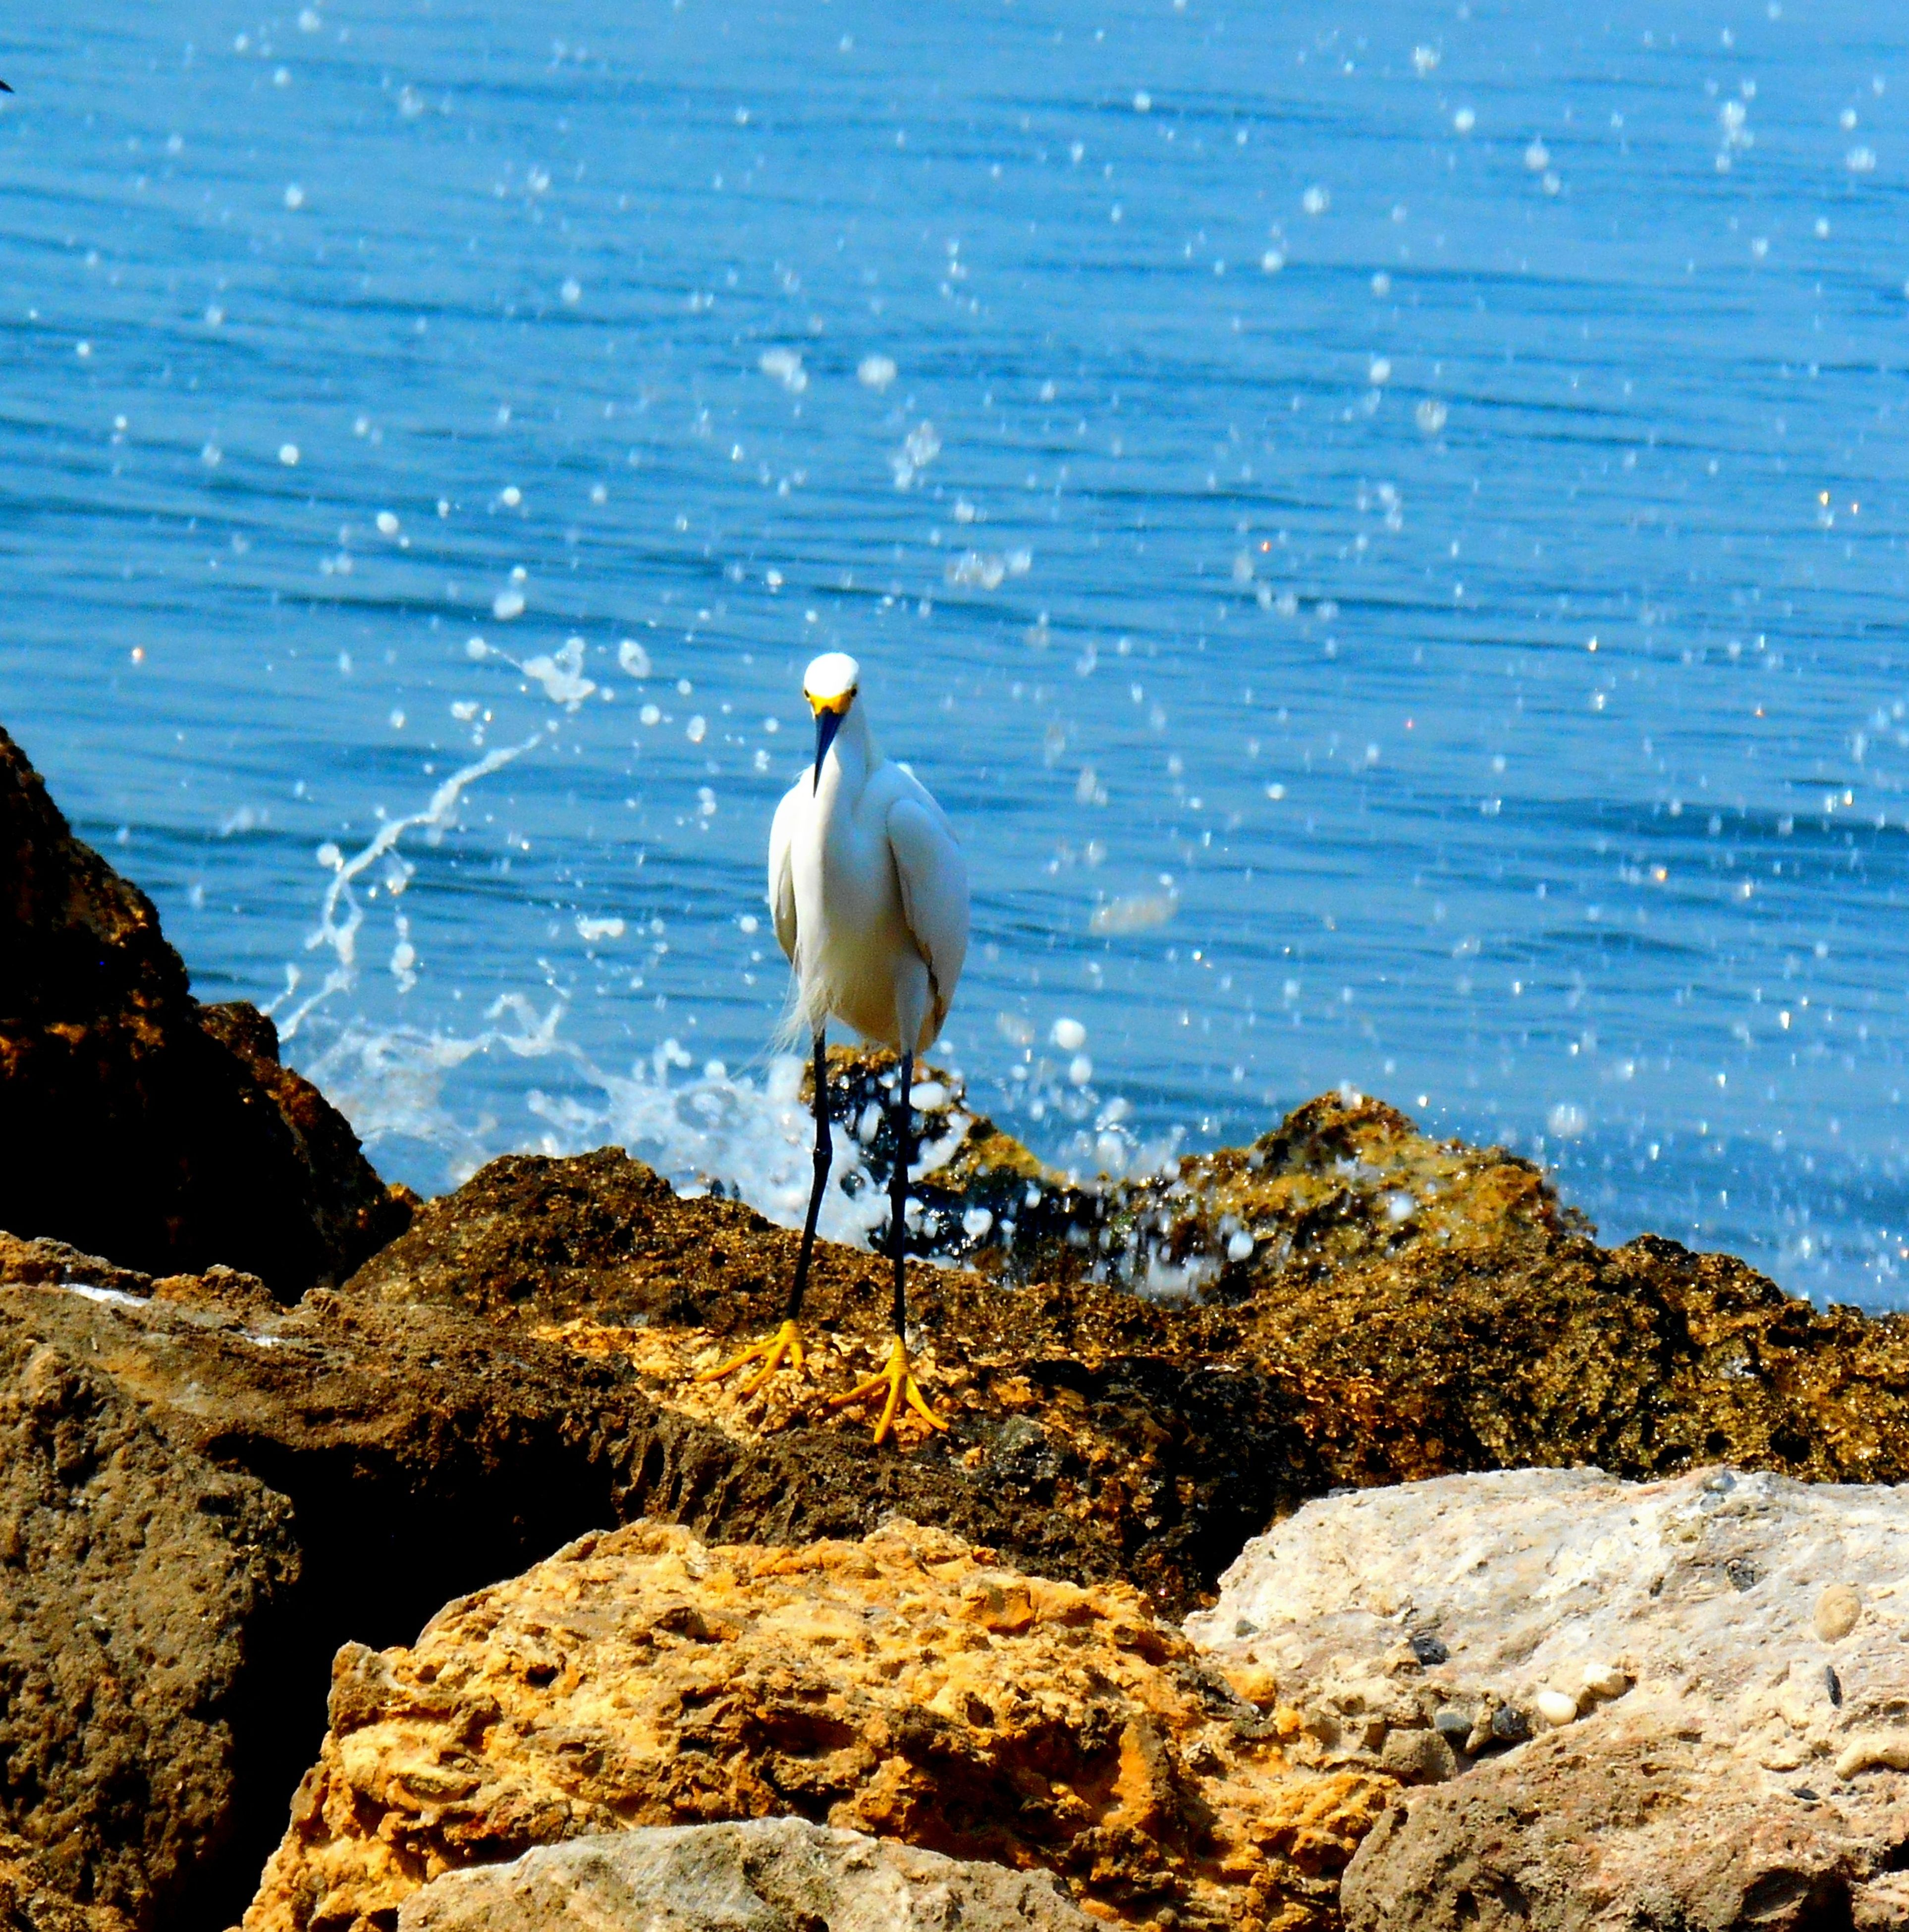 bird, animal themes, animals in the wild, wildlife, water, rock - object, one animal, sea, perching, nature, full length, seagull, beauty in nature, blue, rock, day, sunlight, outdoors, beak, tranquility